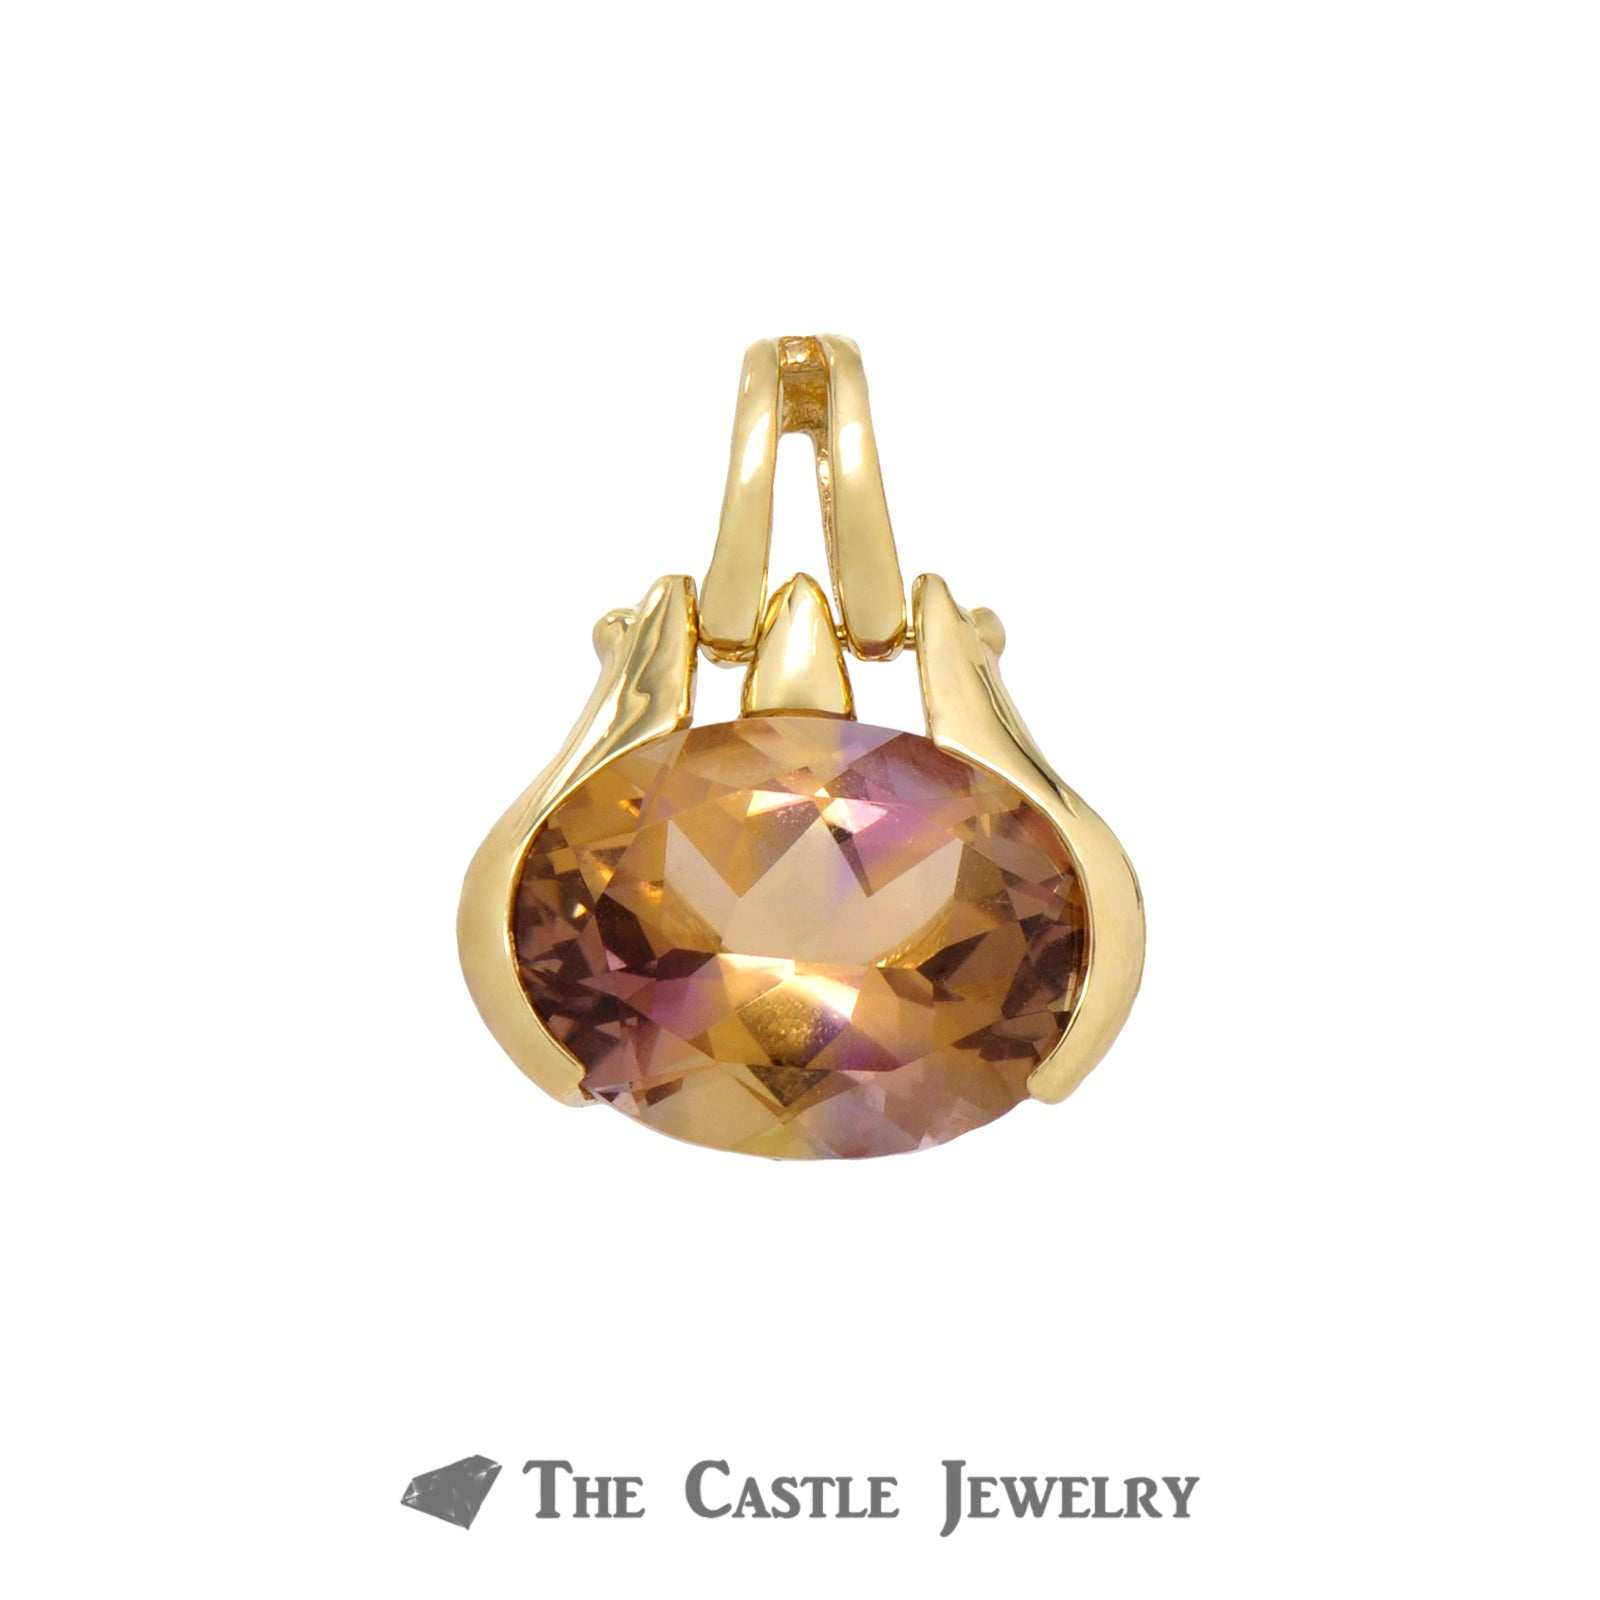 Oval Cut Citrine Pendant in 14k Yellow Gold-0